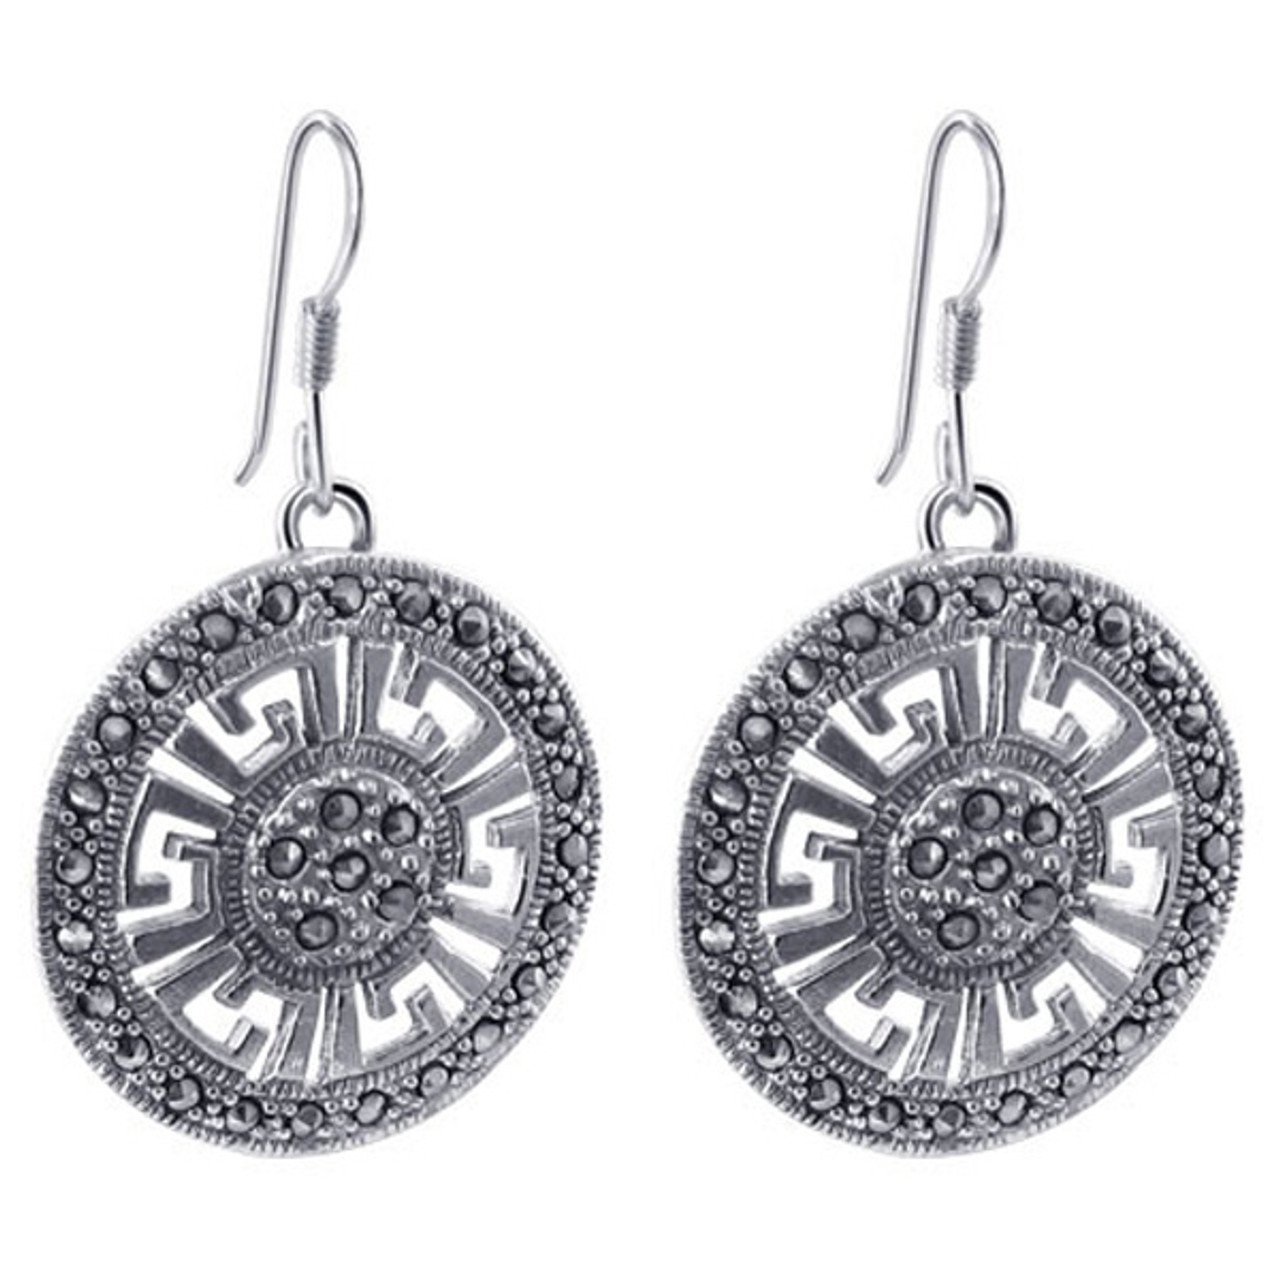 Sterling Silver Dangle Earrings and Pendant Jewelry Set